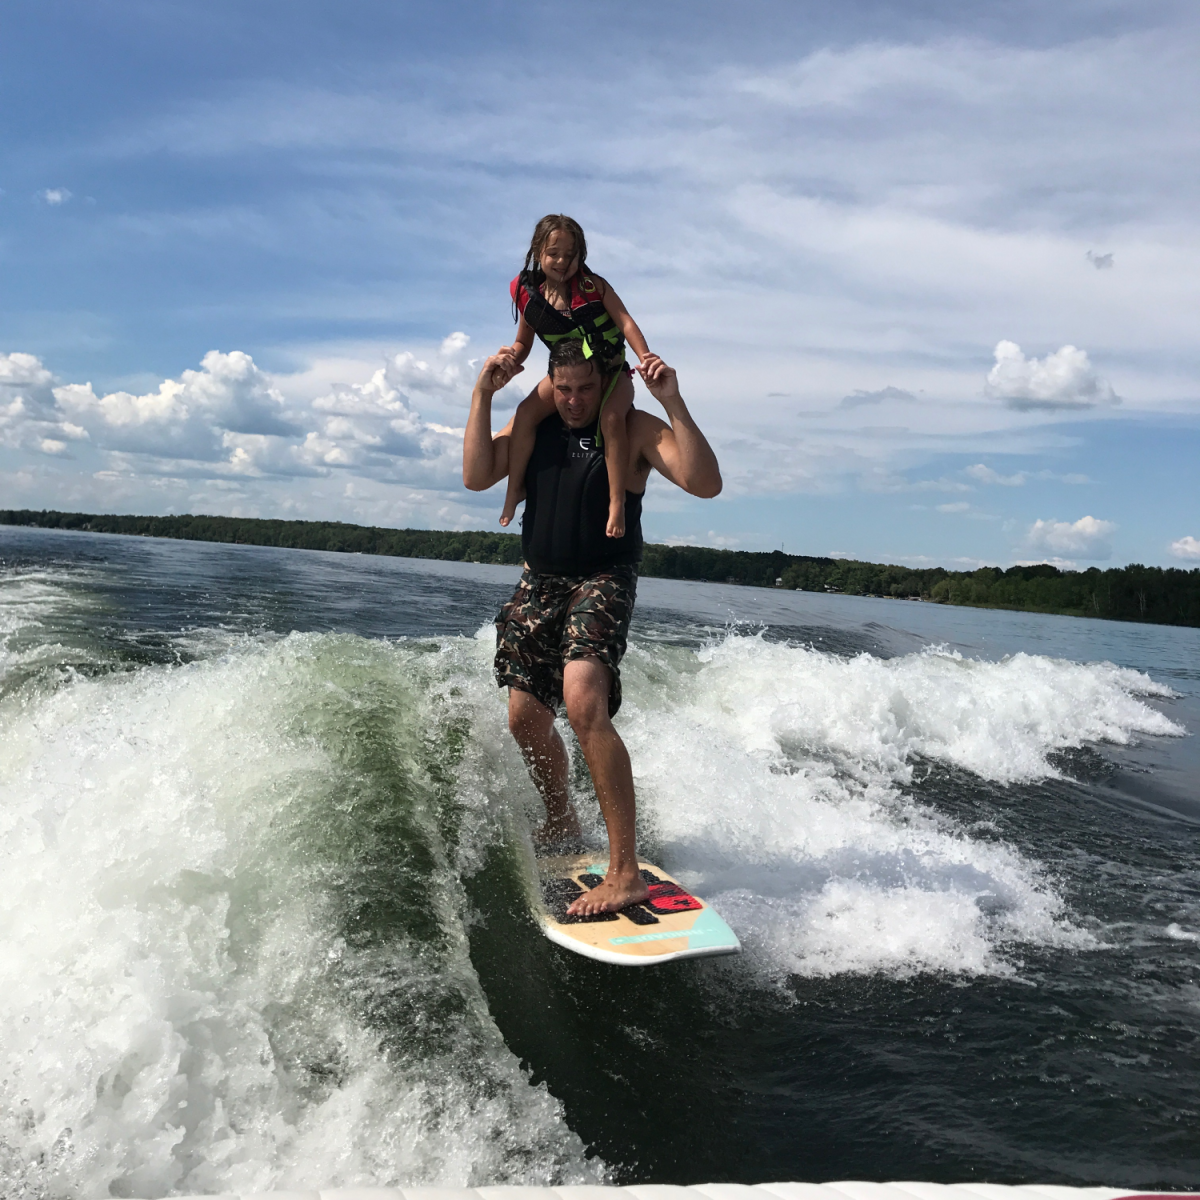 Kids wakesurfing on shoulders with dad